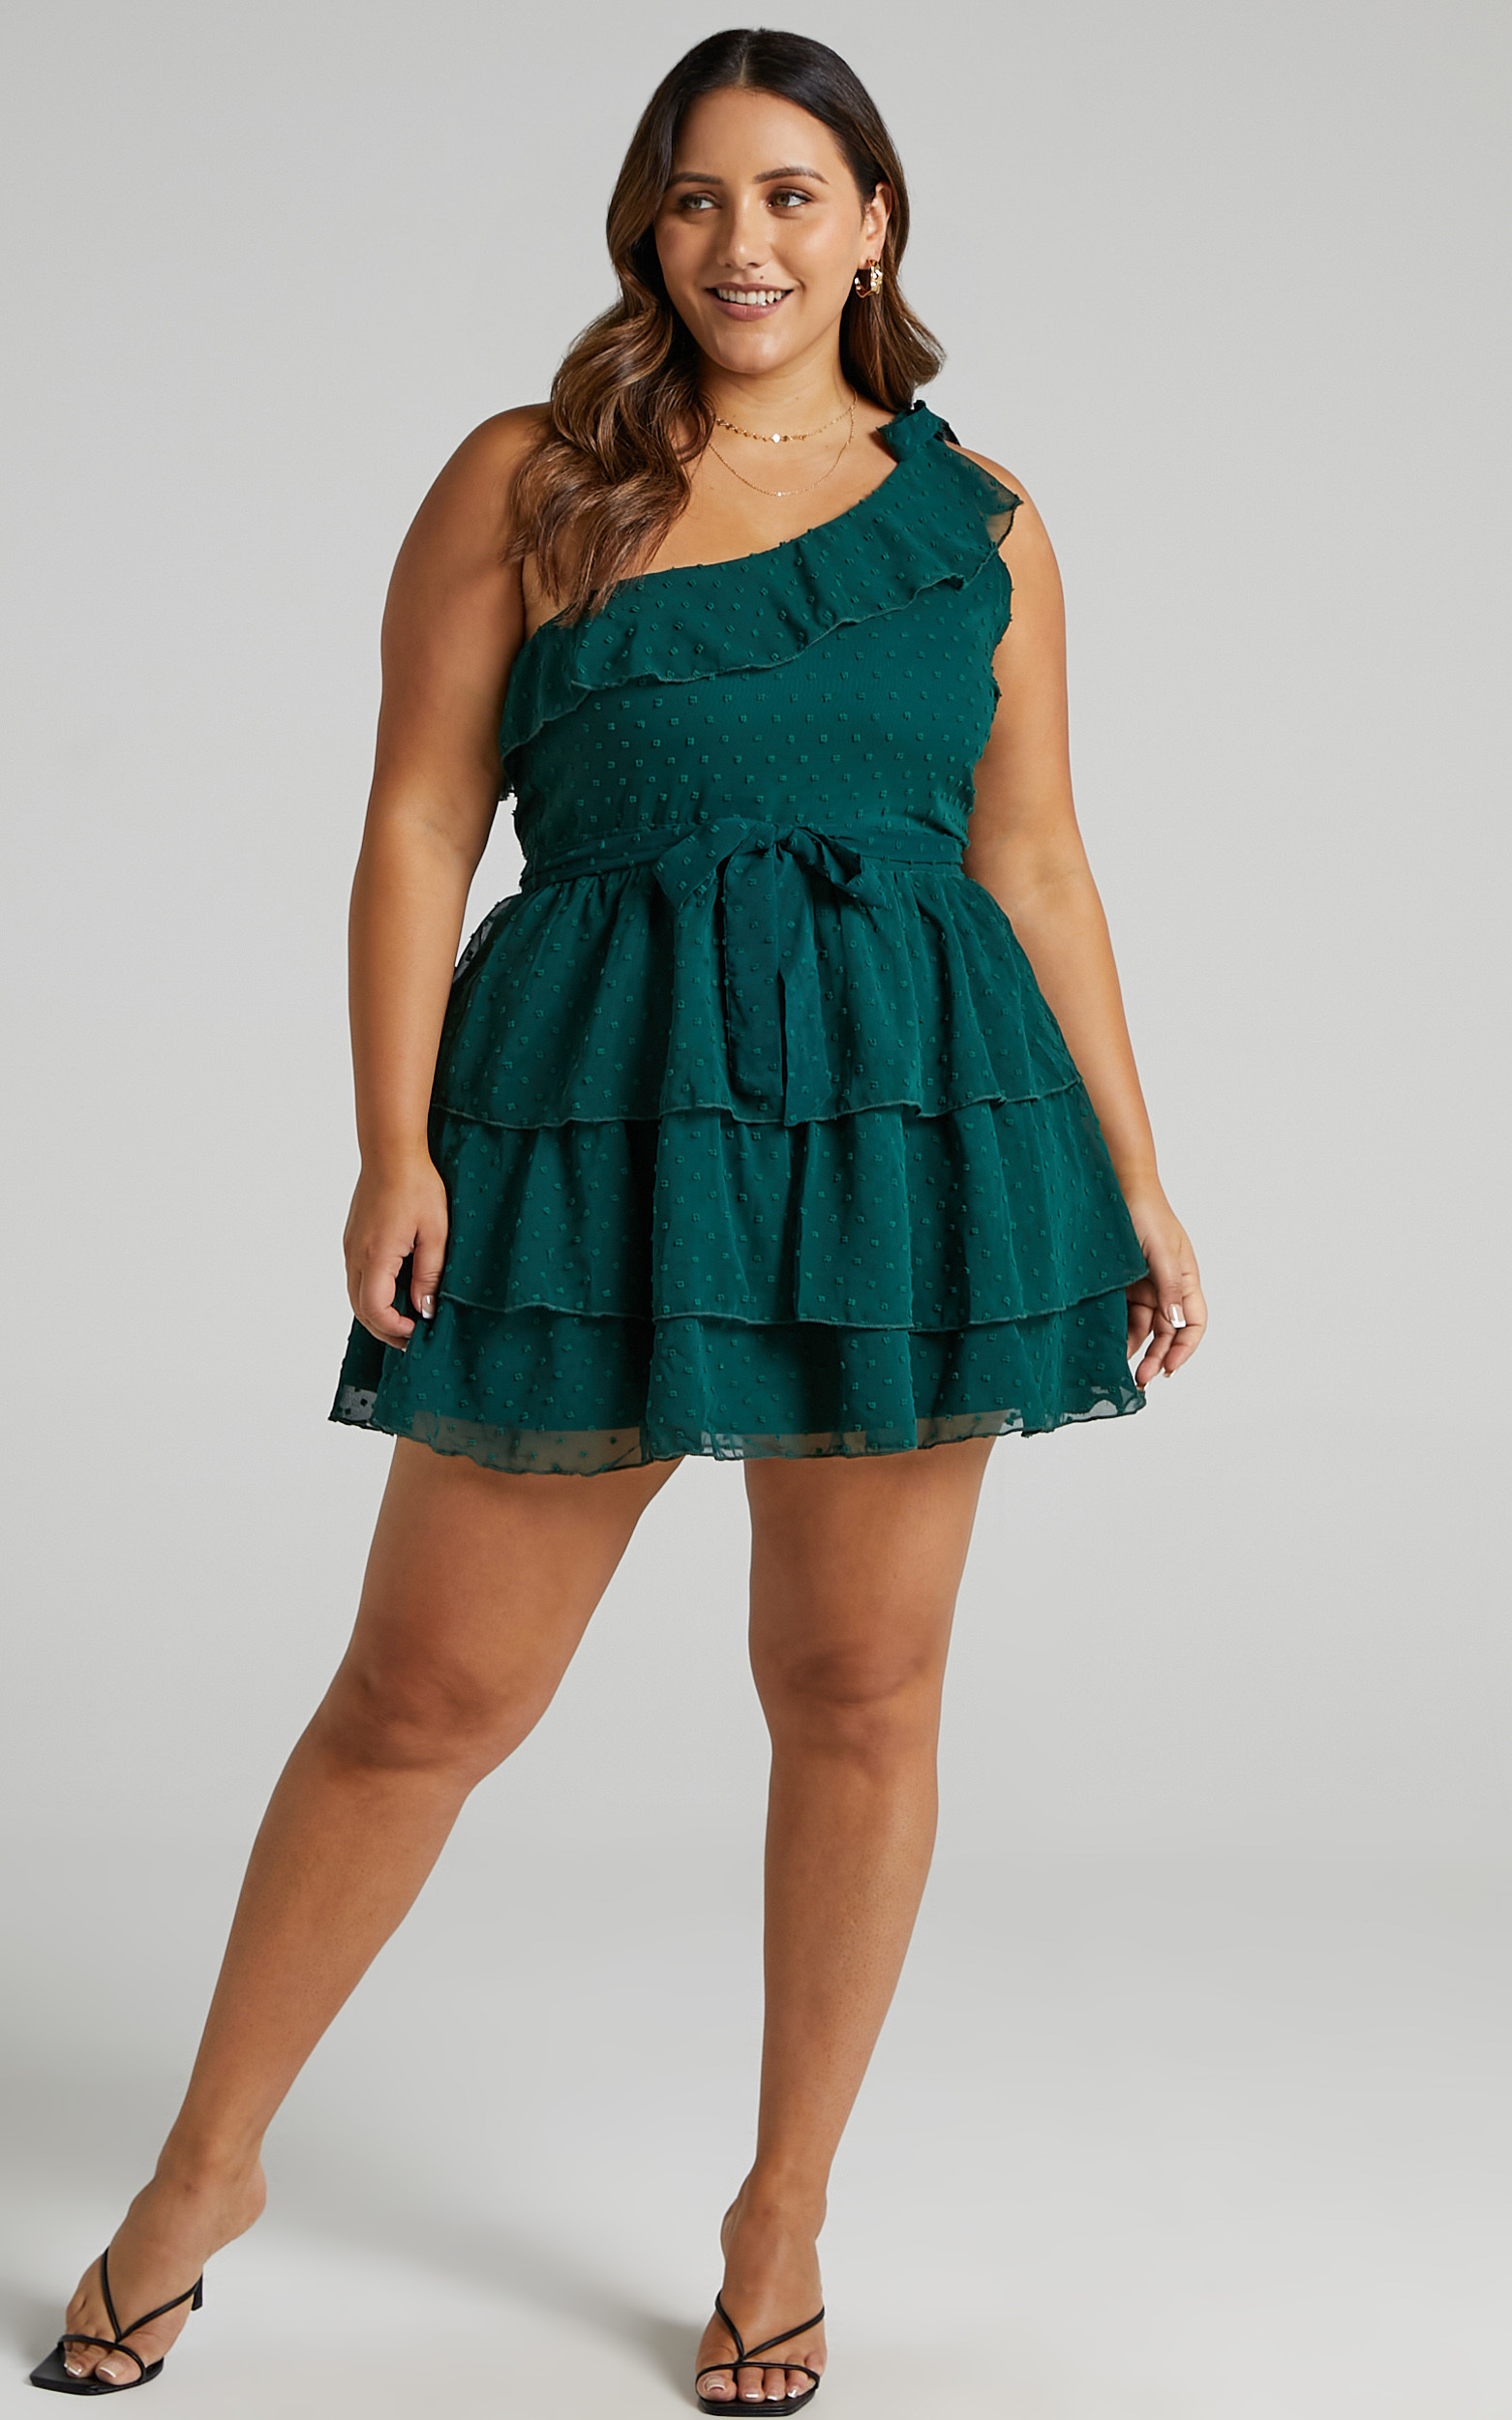 Darling I Am A Daydream Dress in Emerald - 20, GRN4, hi-res image number null